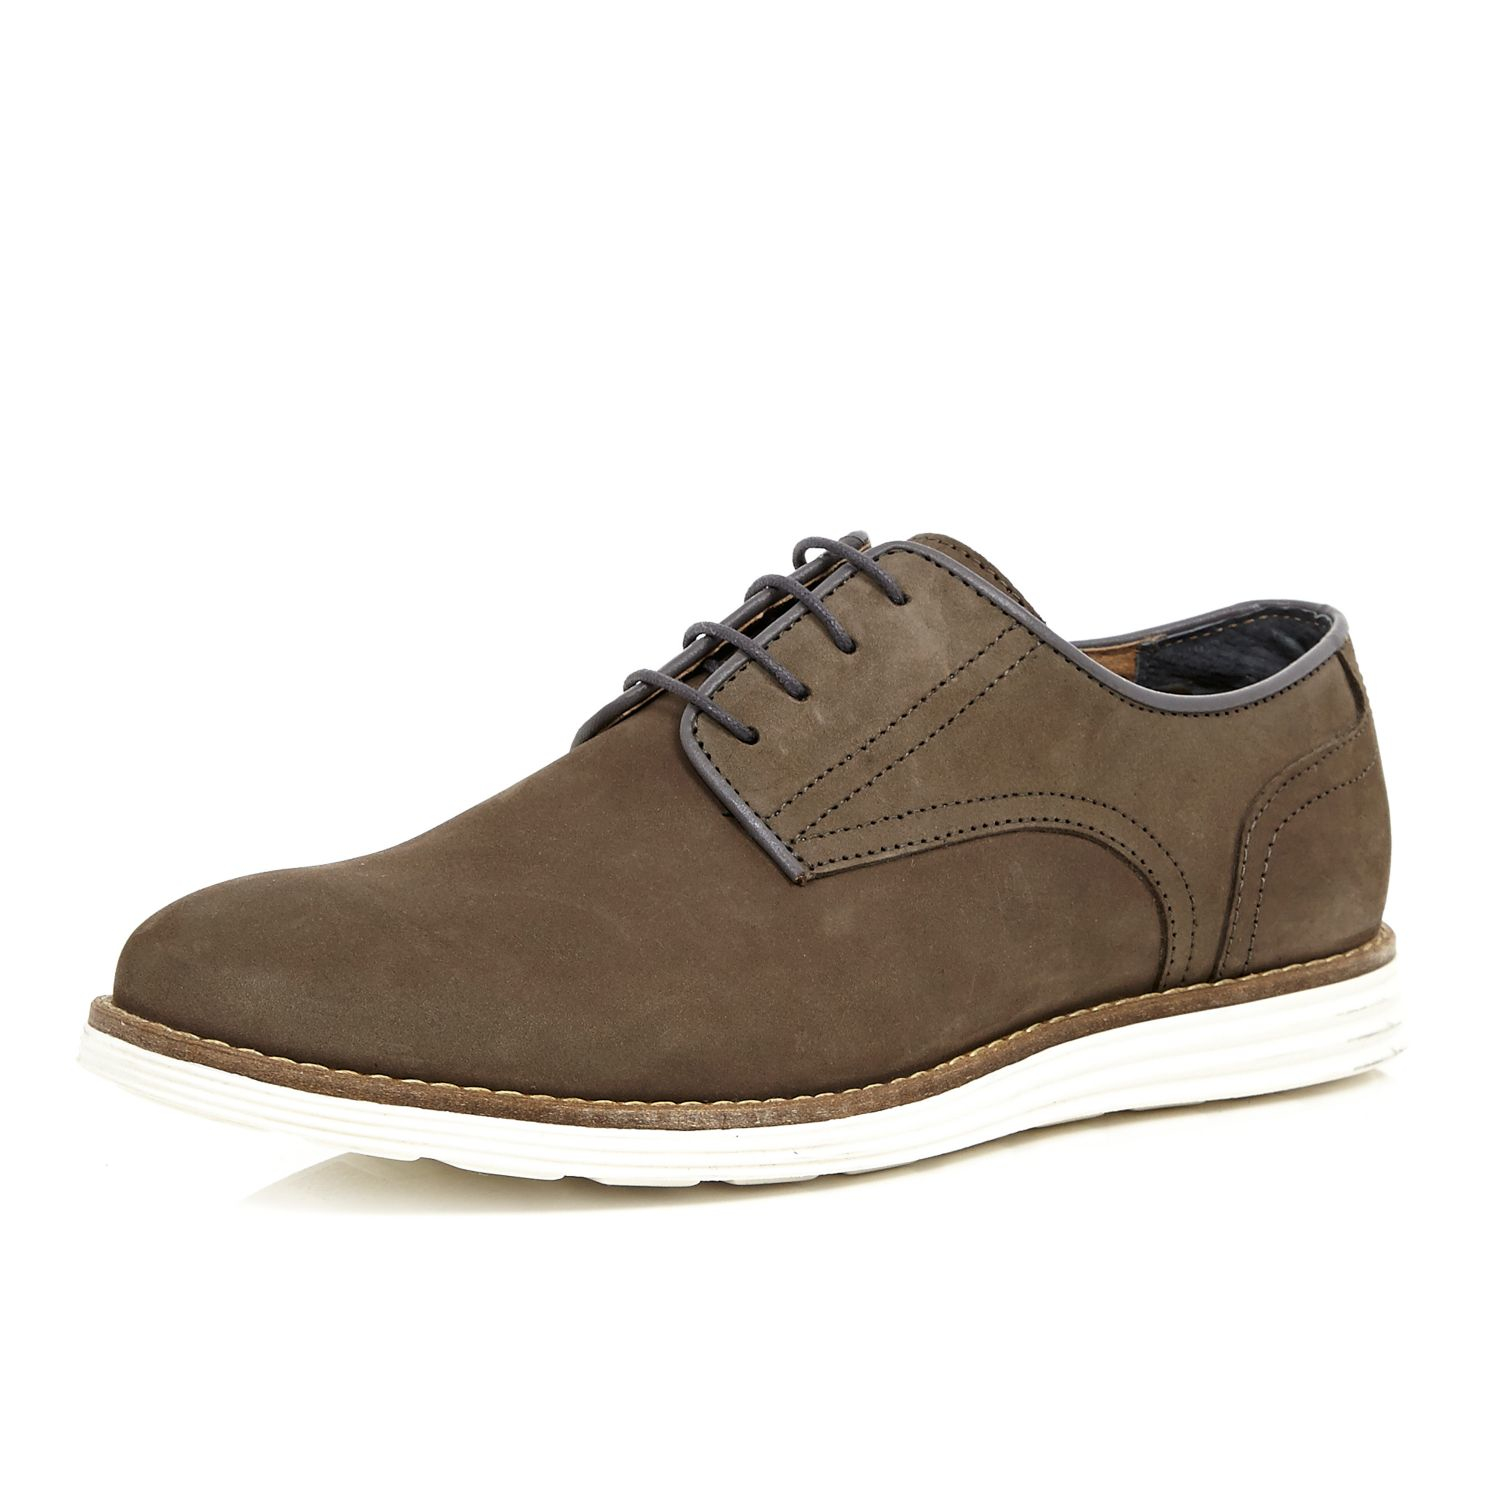 river island brown leather contrast wedge sole shoes